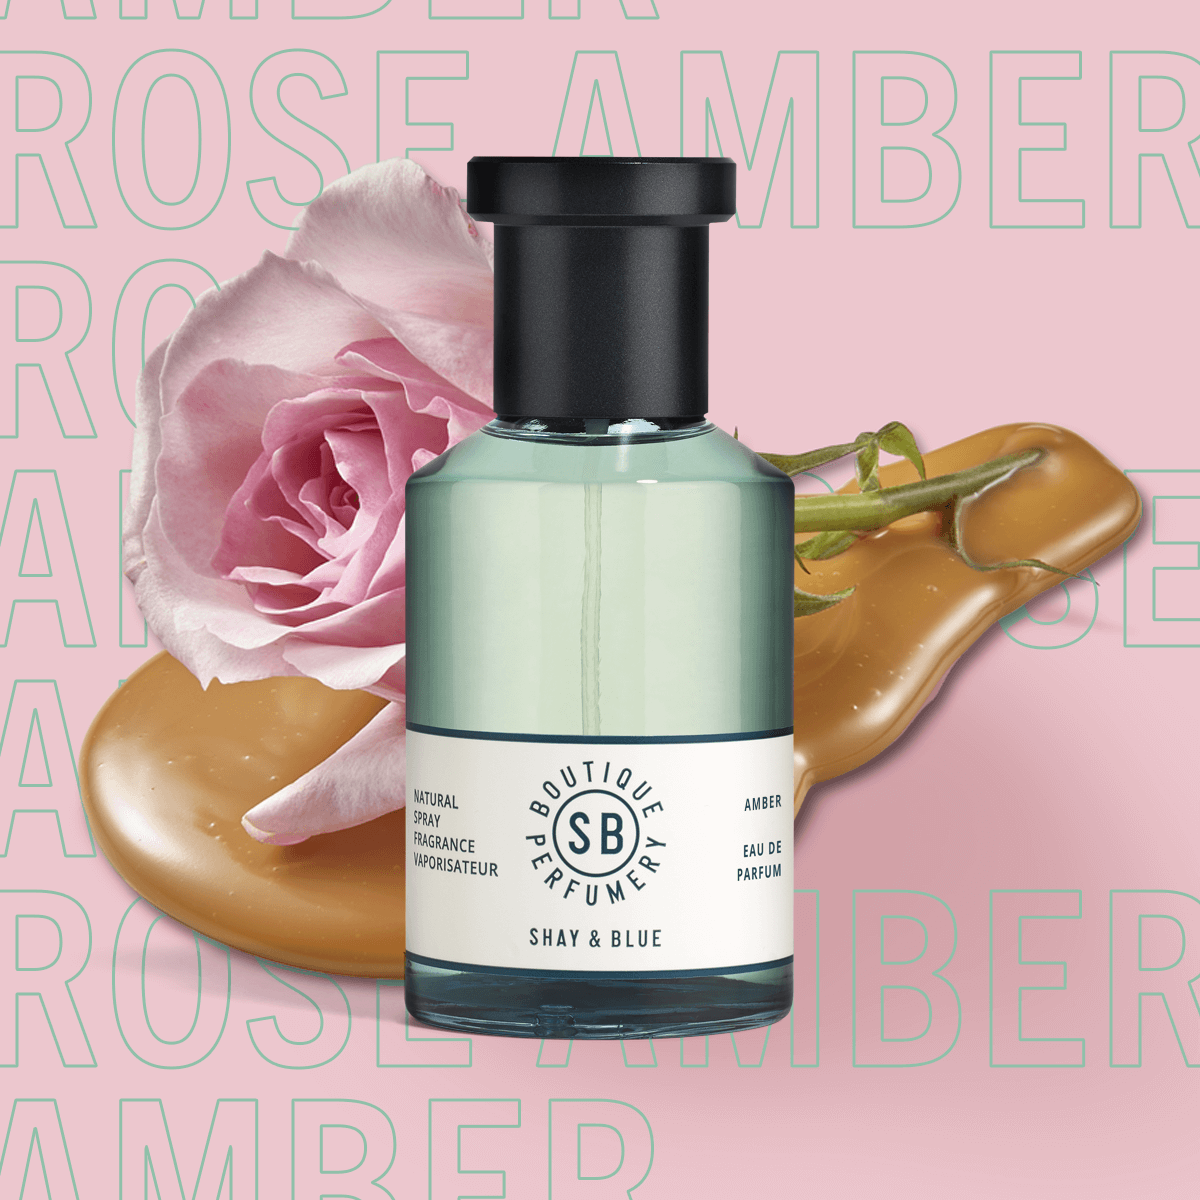 Amber Rose Fragrance 100ml | New season May Rose is blended with white amber and sweet creamy notes. | Clean All Gender Fragrance | Shay & Blue